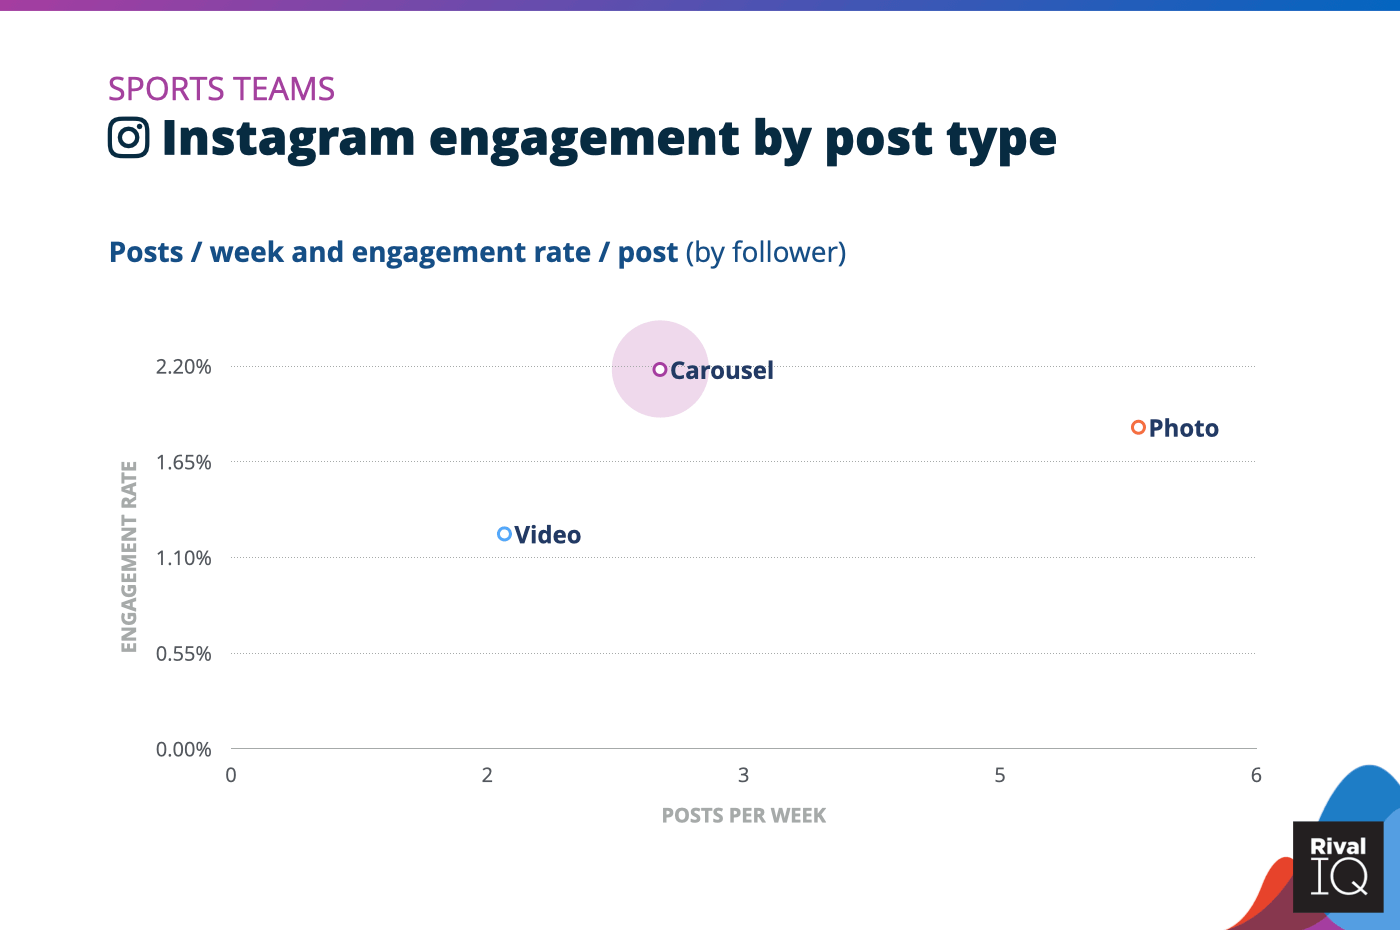 Chart of Instagram posts per week and engagement rate by post type, Sports Teams